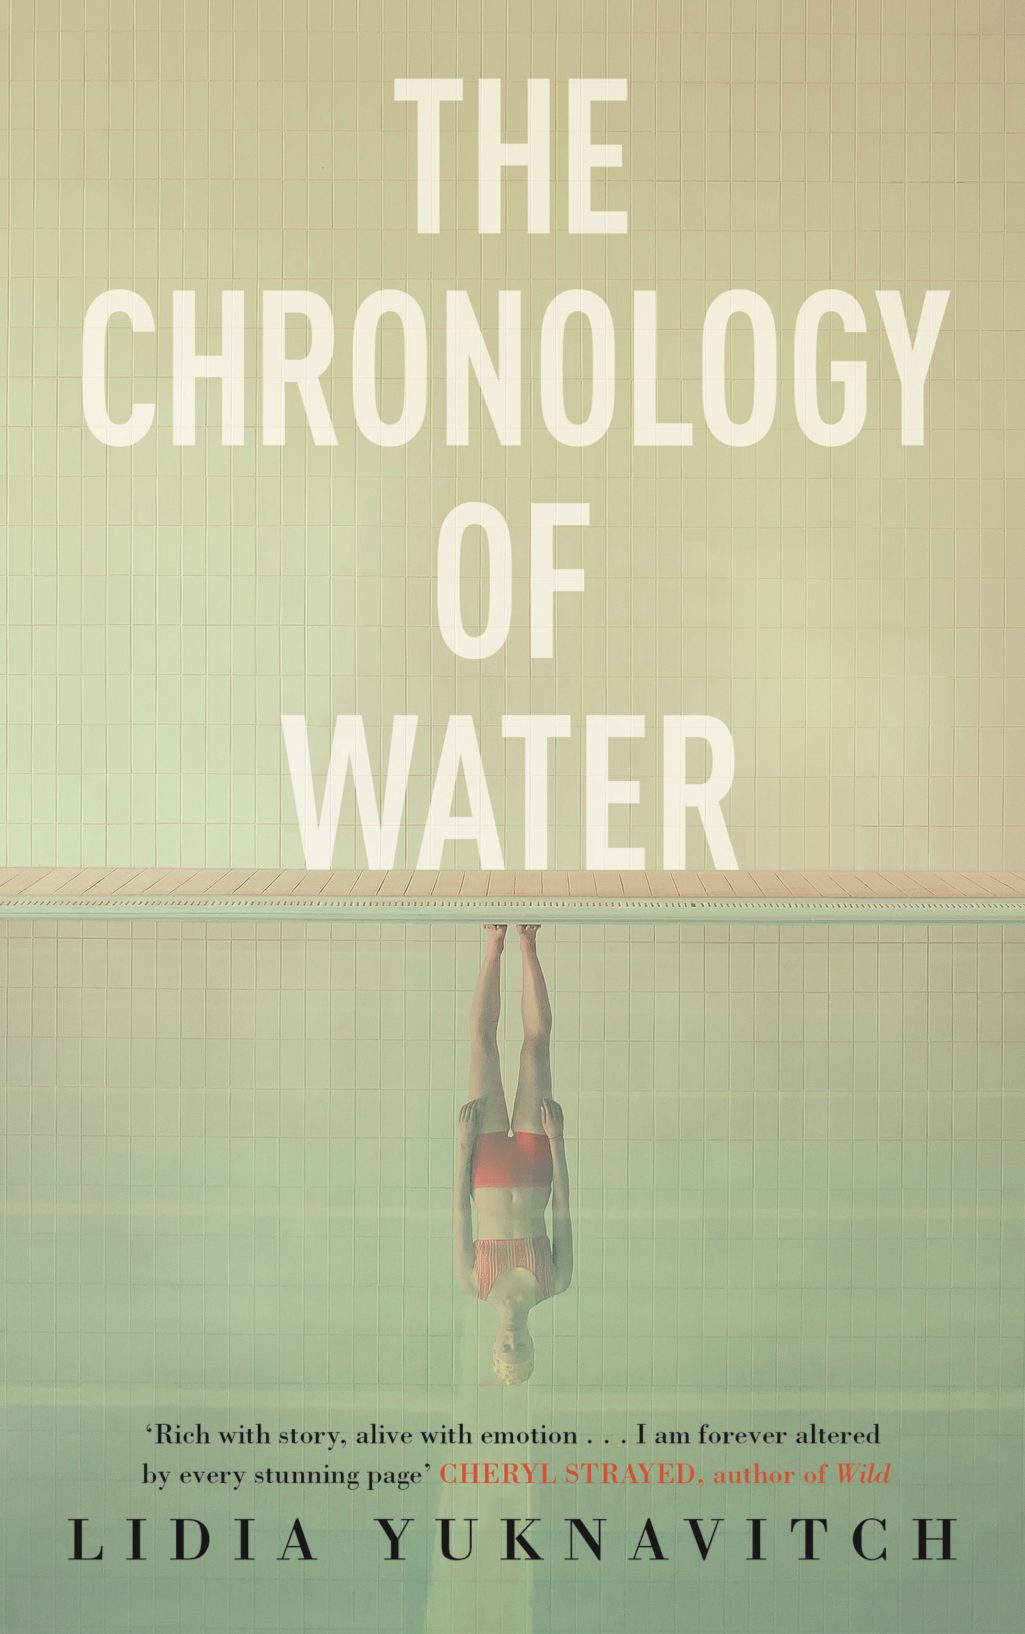 the-chronology-of-water-hardback-cover-9781786894373